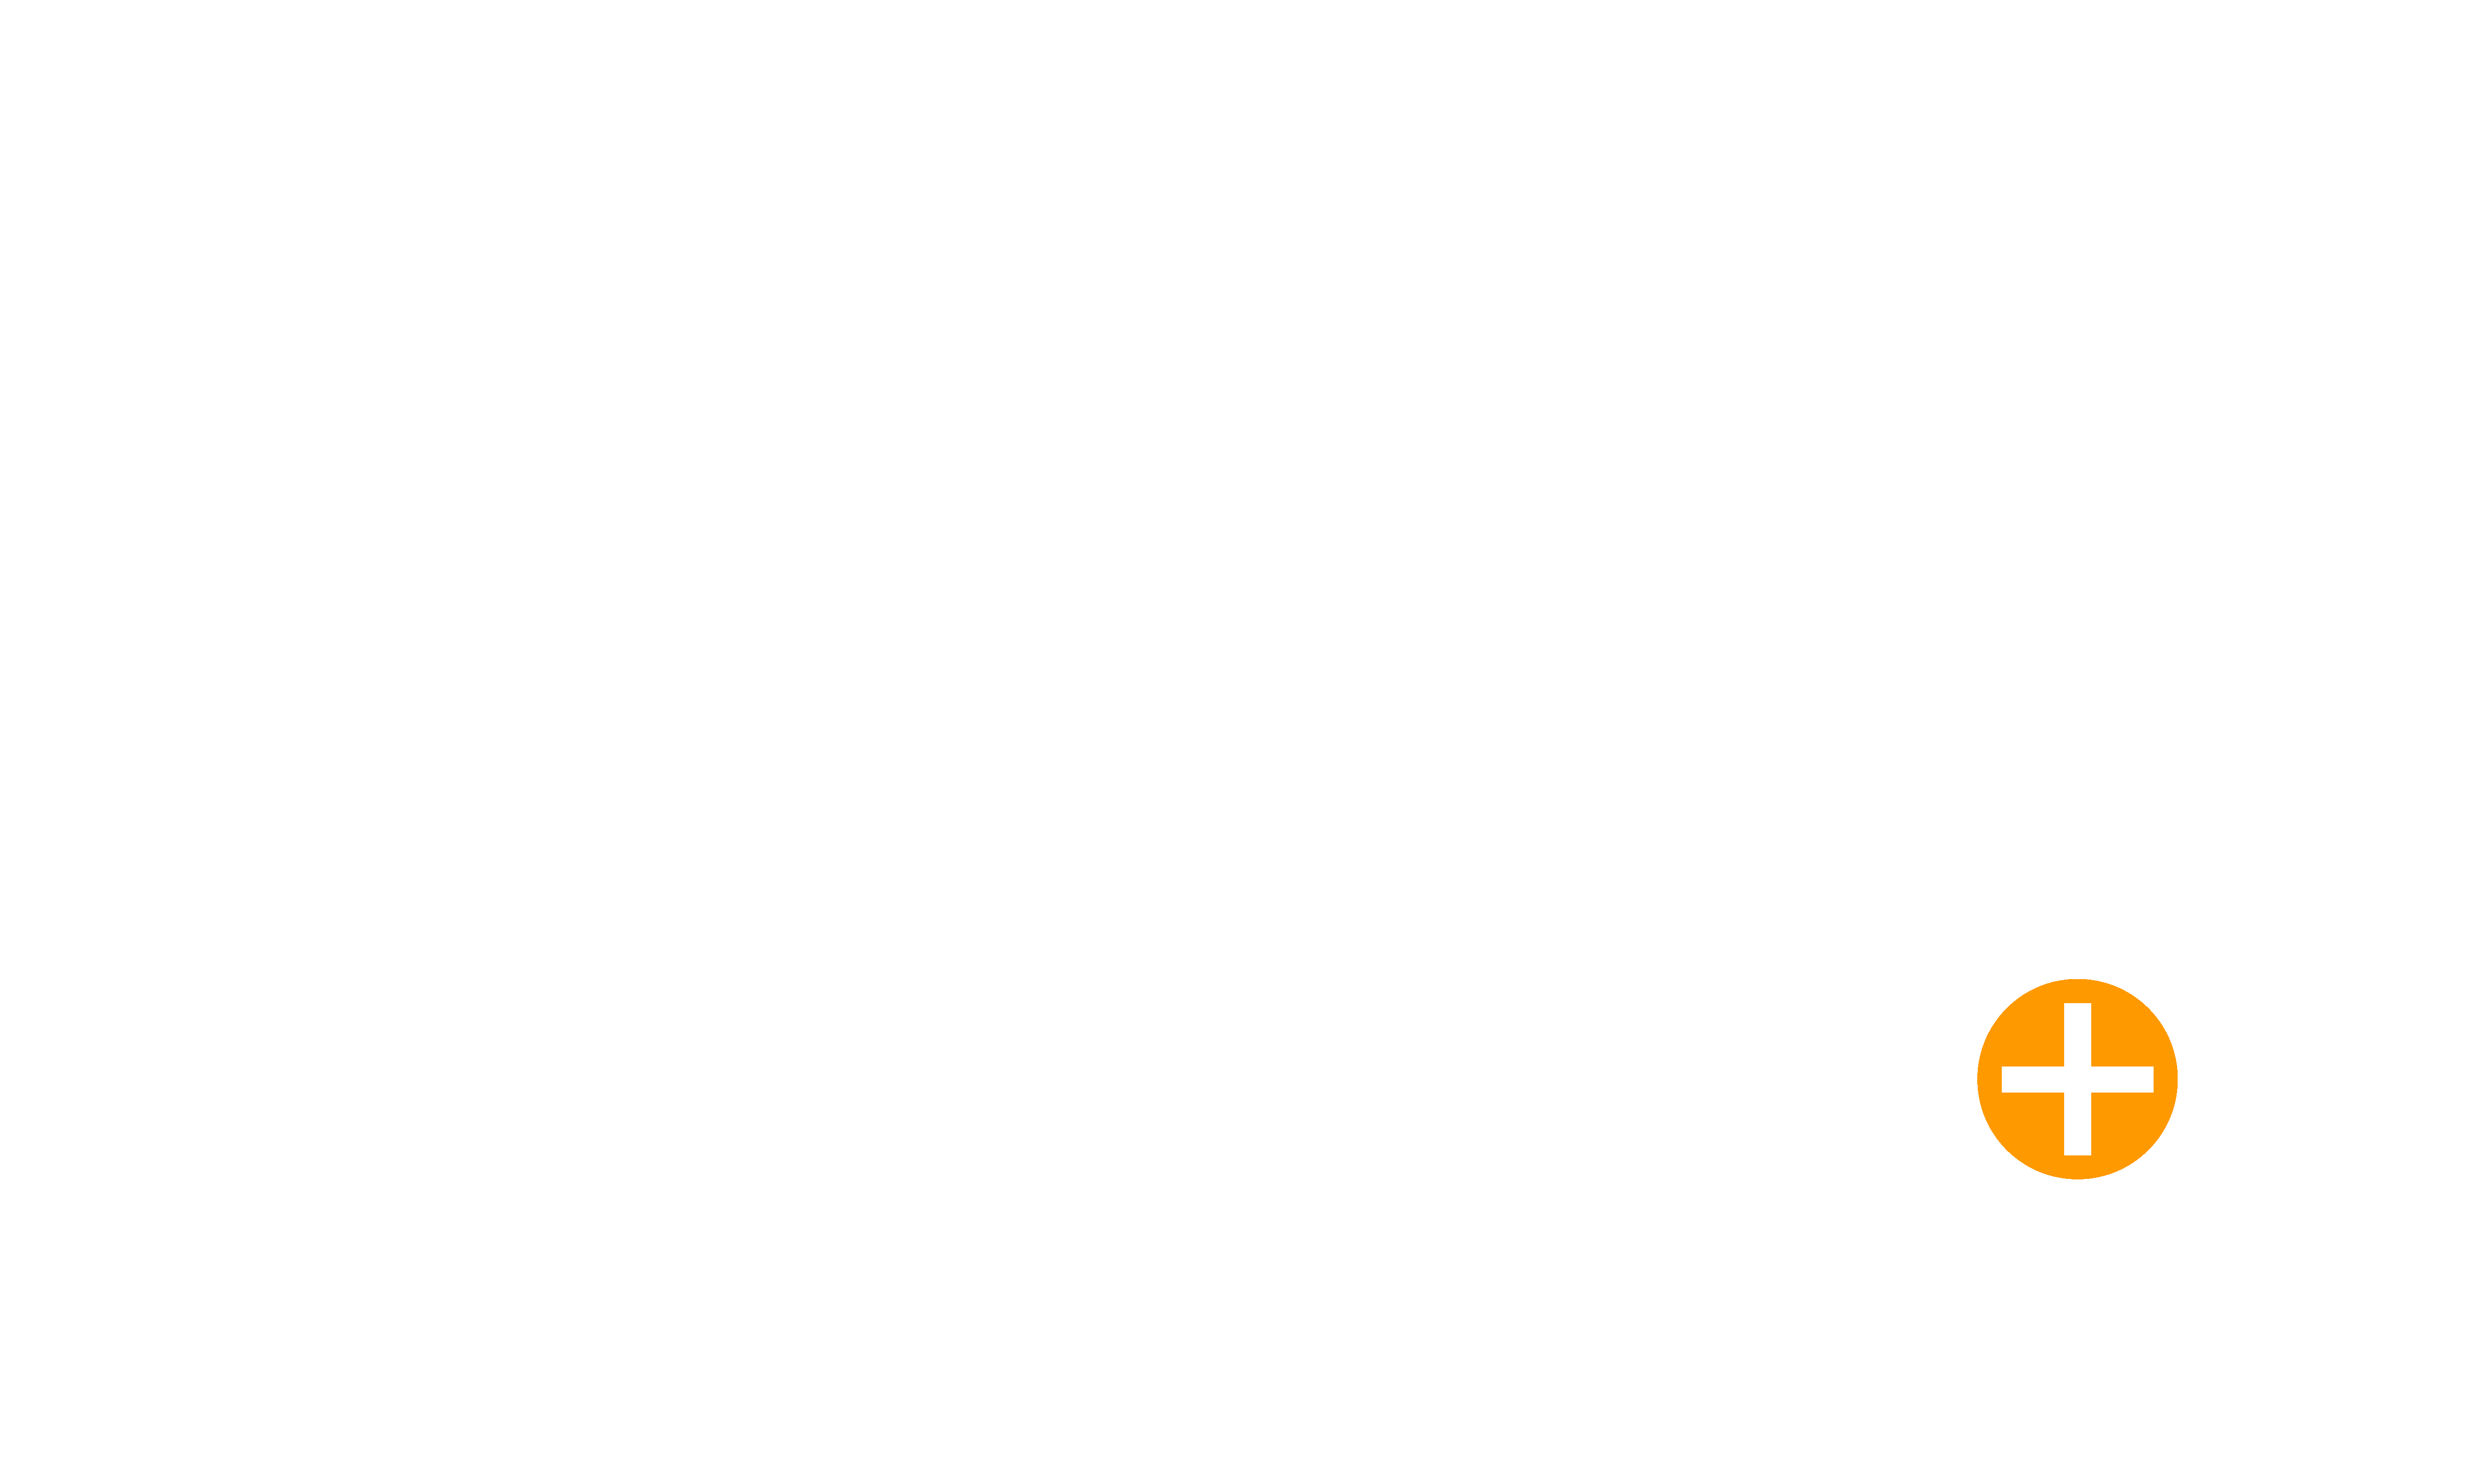 Lawyer By Trade